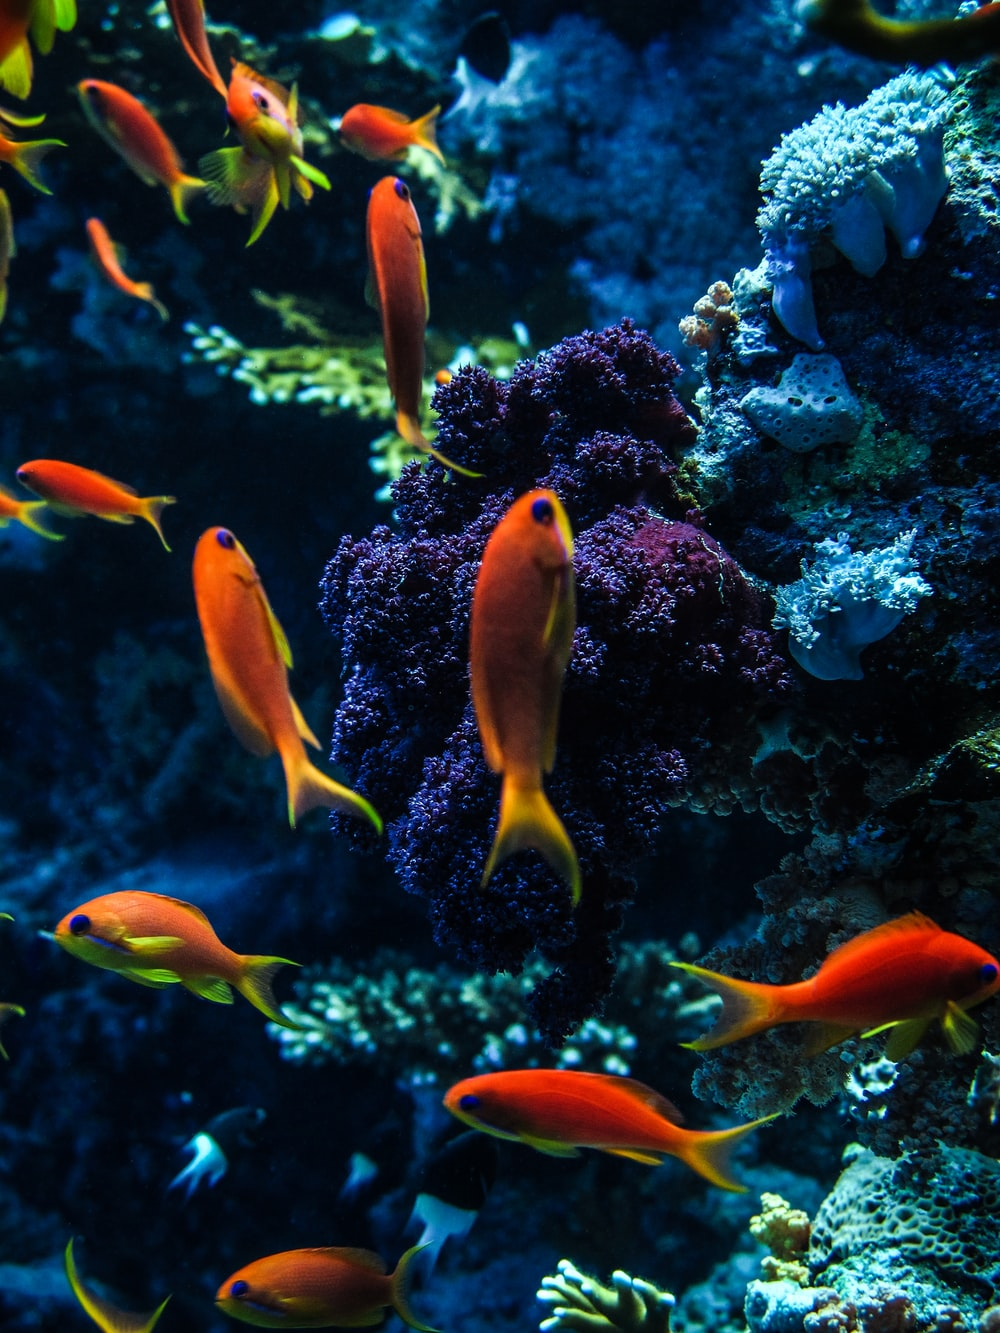 orange and yellow fish in water